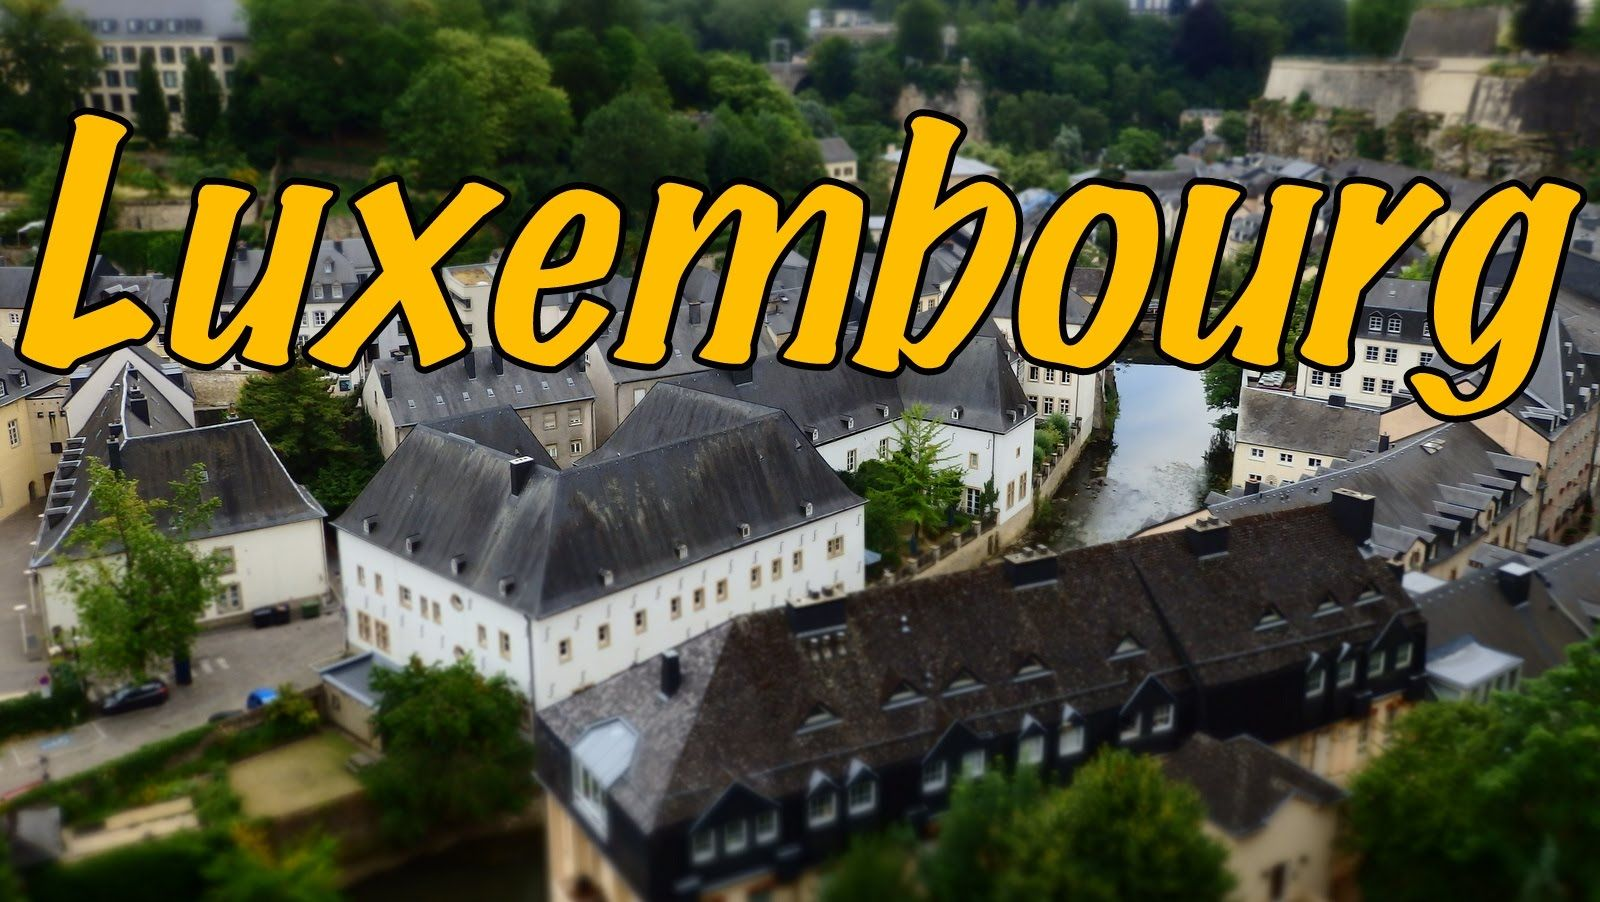 10 Things To Do In Luxembourg City Top Attractions Travel Guide Beautiful Travel Destinations Luxembourg City Travel